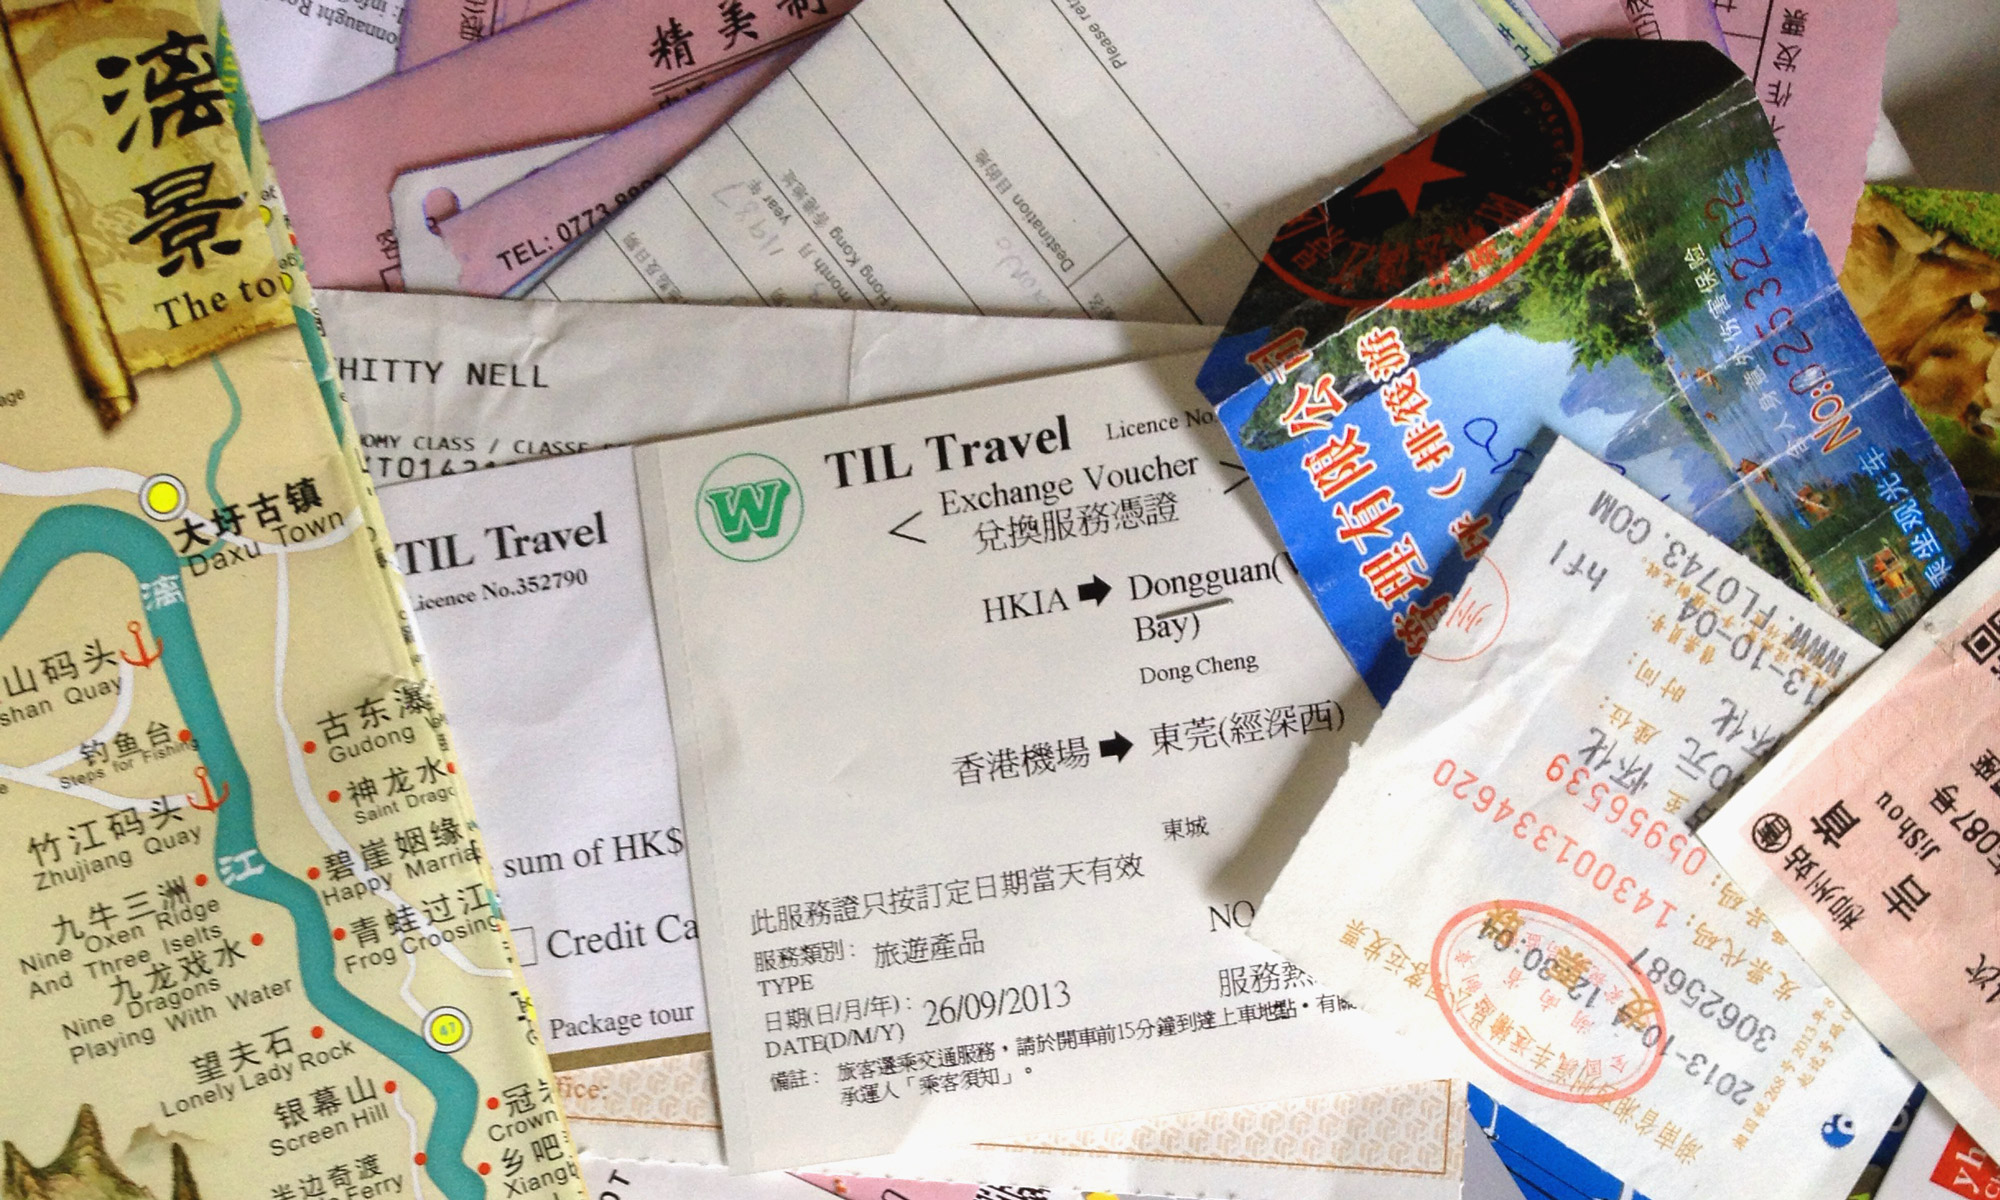 Photo of tickets and receipts from China